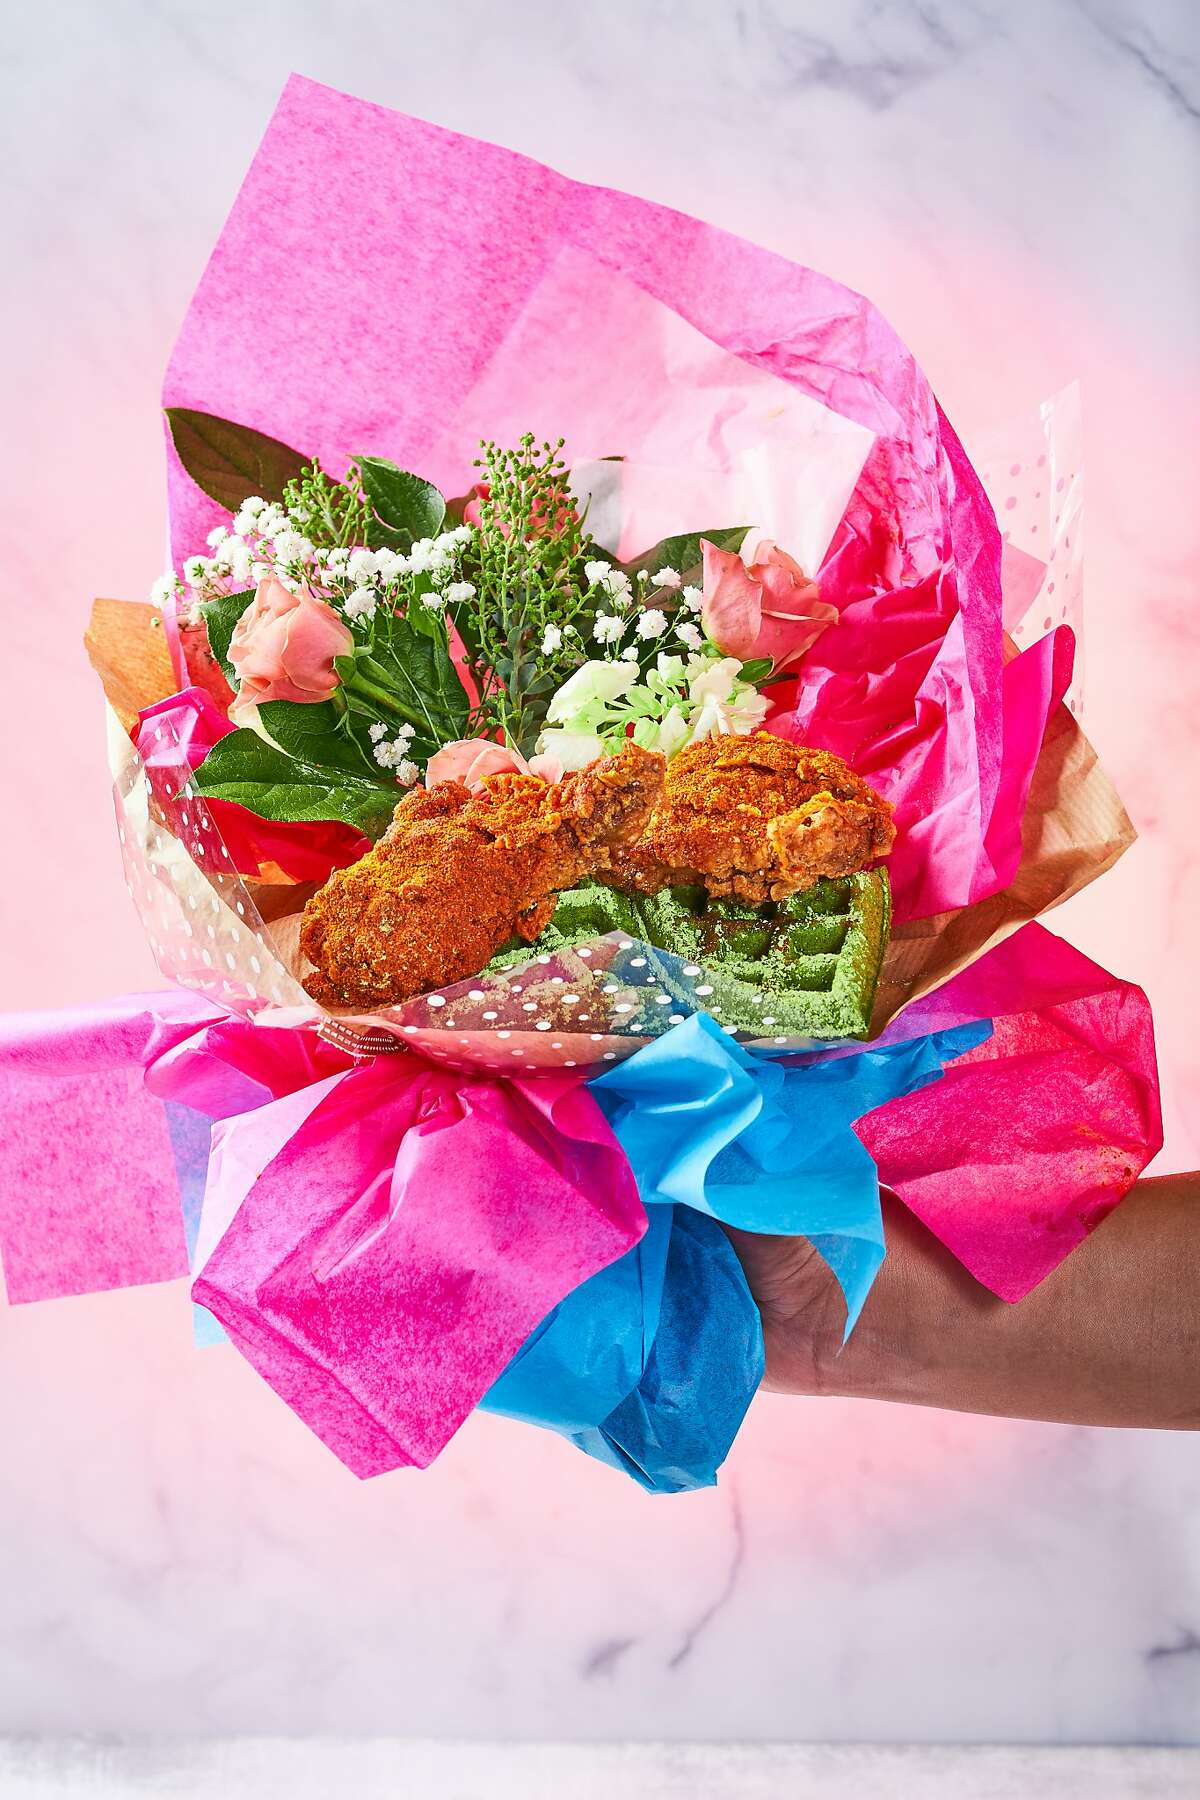 A fried chicken bouquet for Valentine's Day from Tokyo Hot Chicken, a ghost kitchen from Michael Mina's restaurant group.